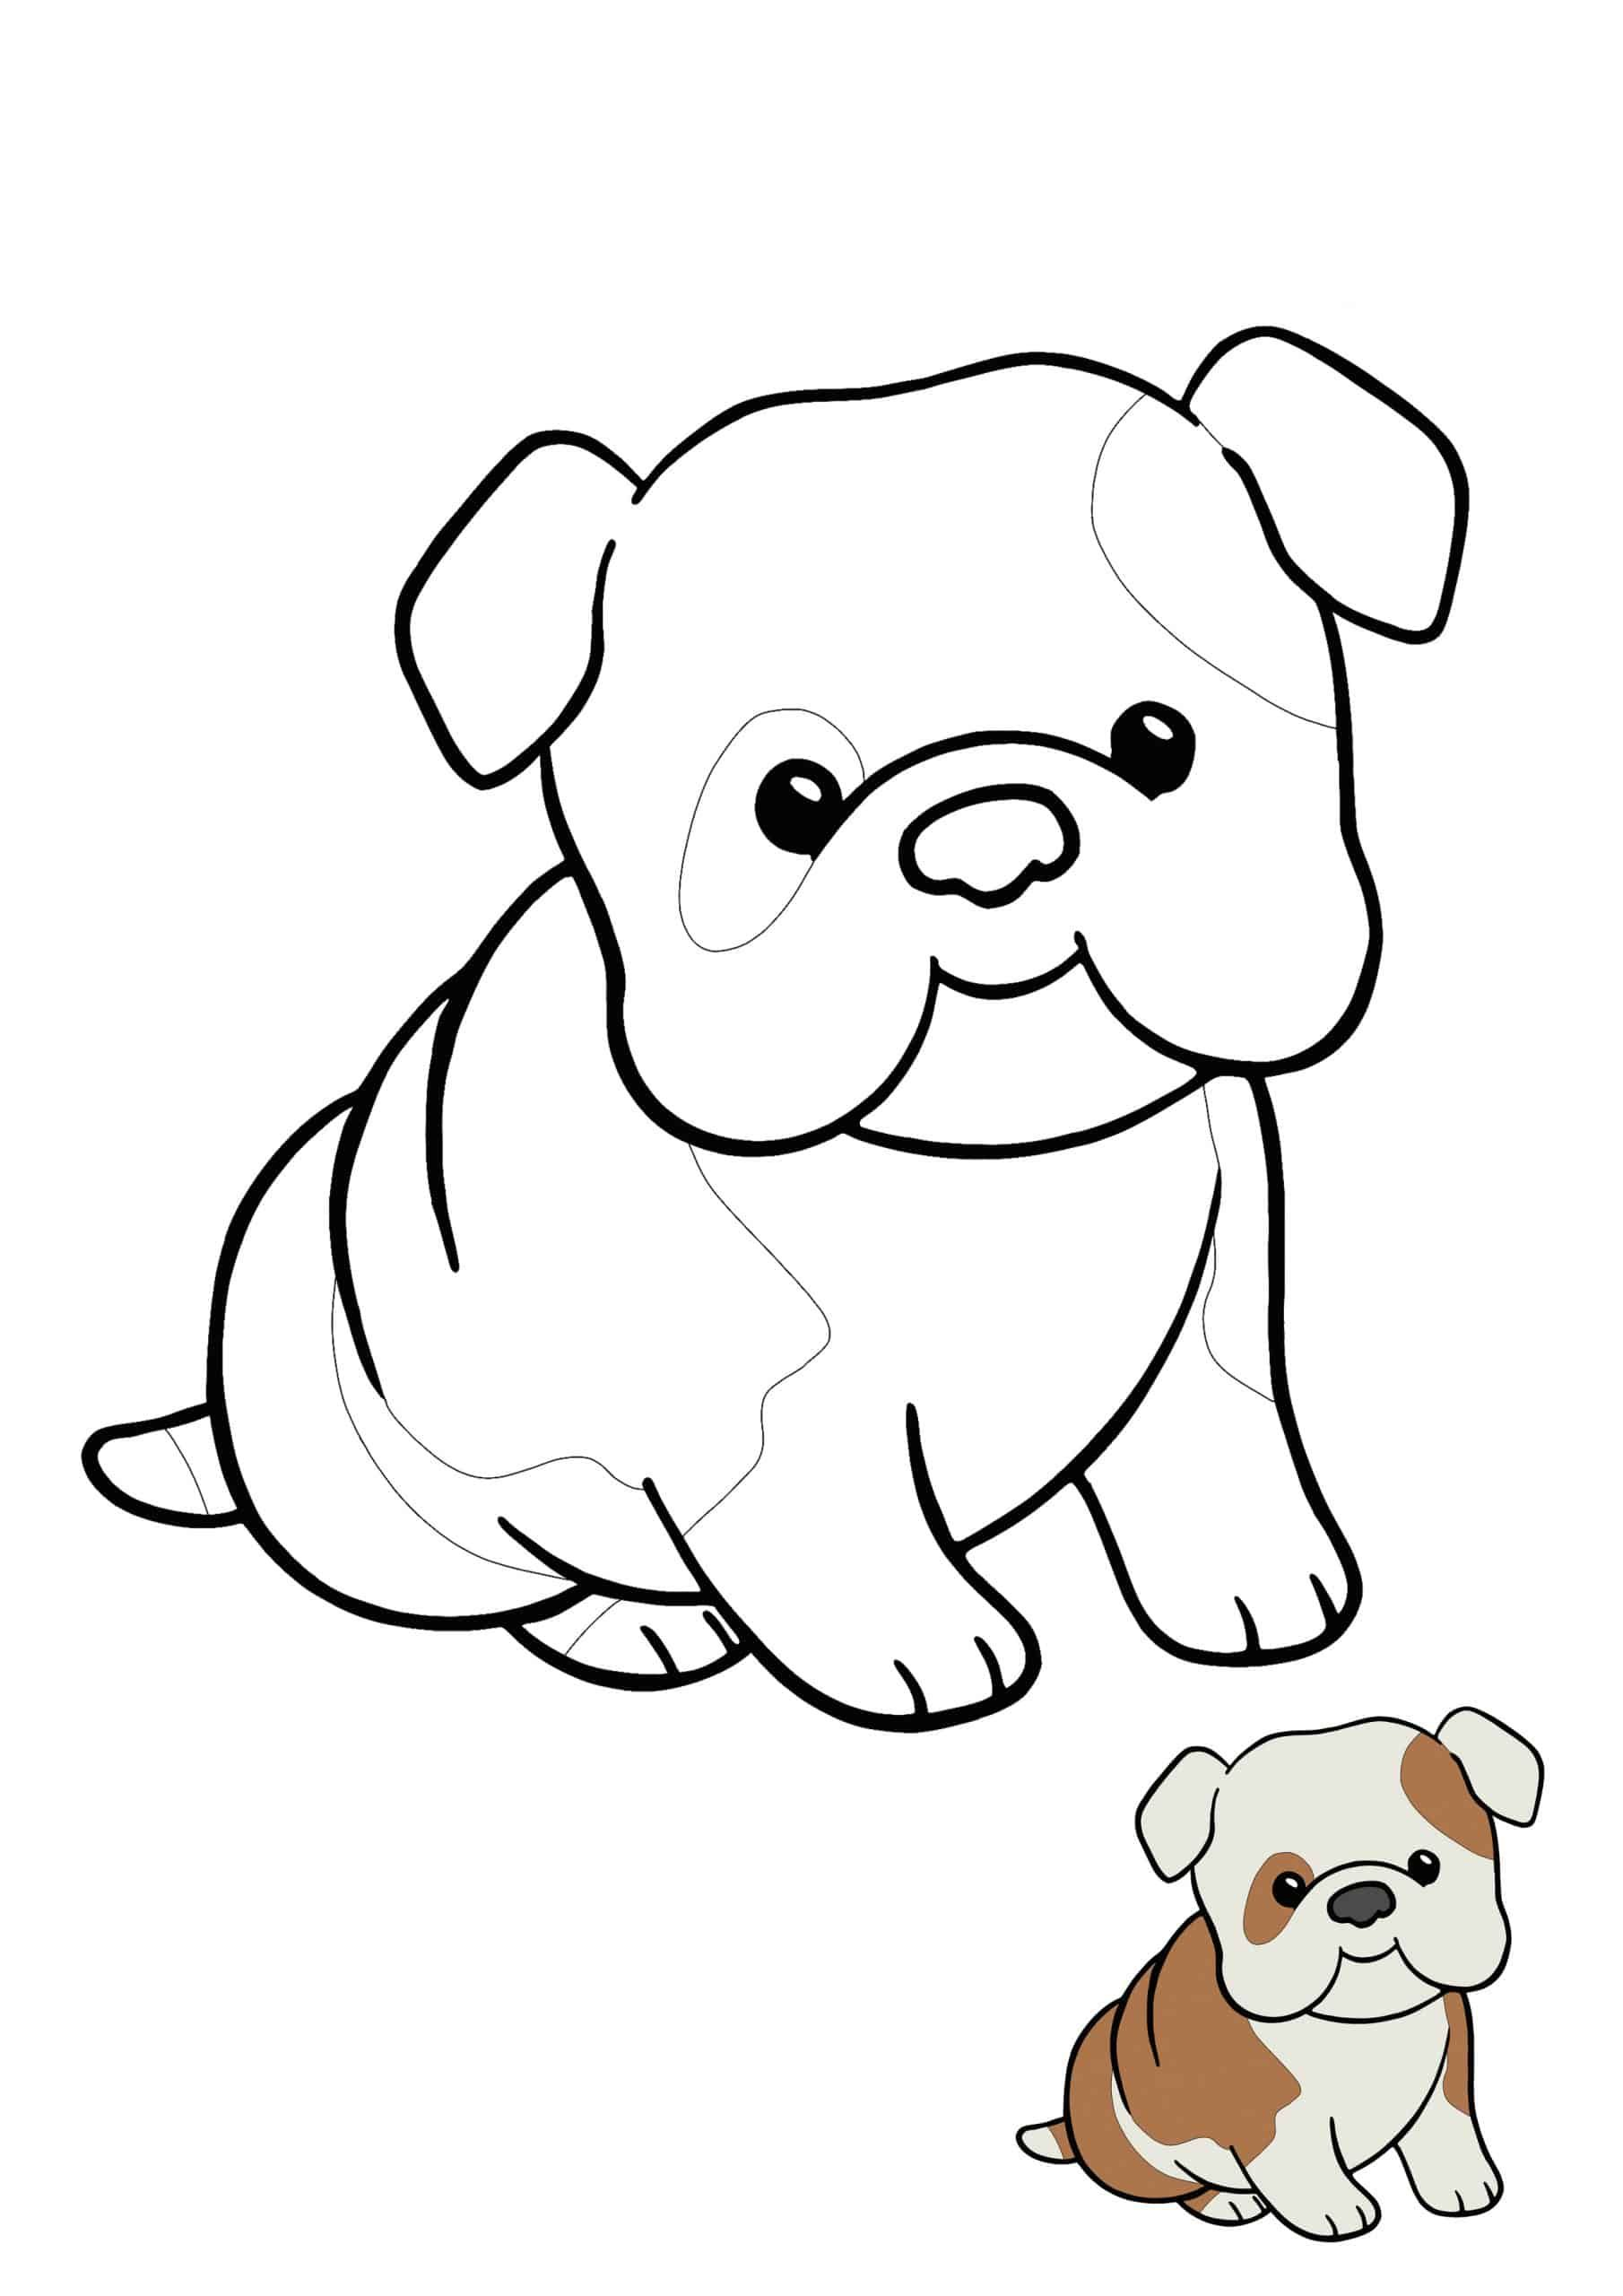 Kawaii Puppy Coloring Picture Dog Coloring Page Coloring Pages Kawaii Animals [ 2560 x 1810 Pixel ]